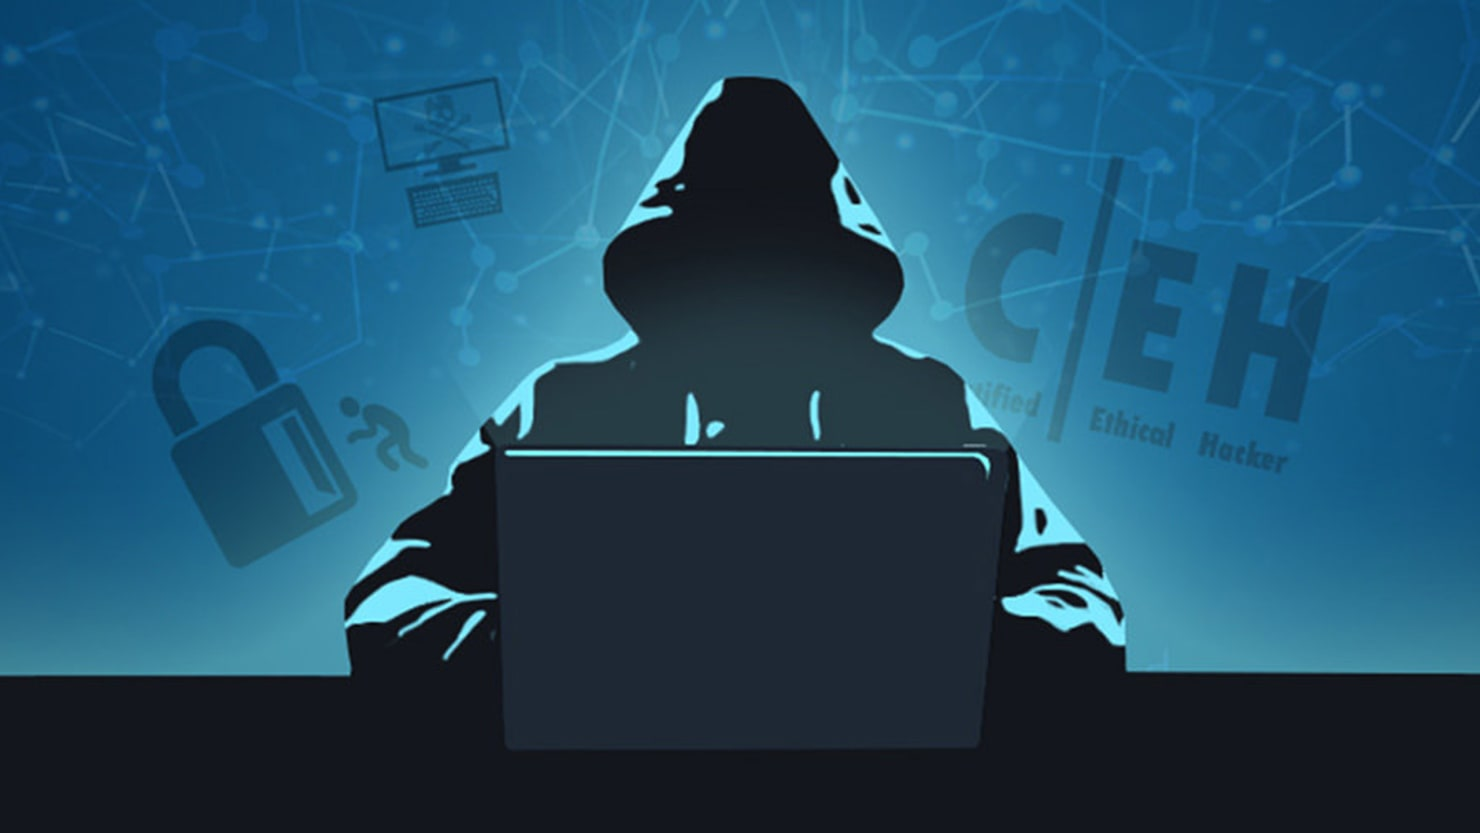 How To Be An Ethical Hacker to Fight Against Cybercrime